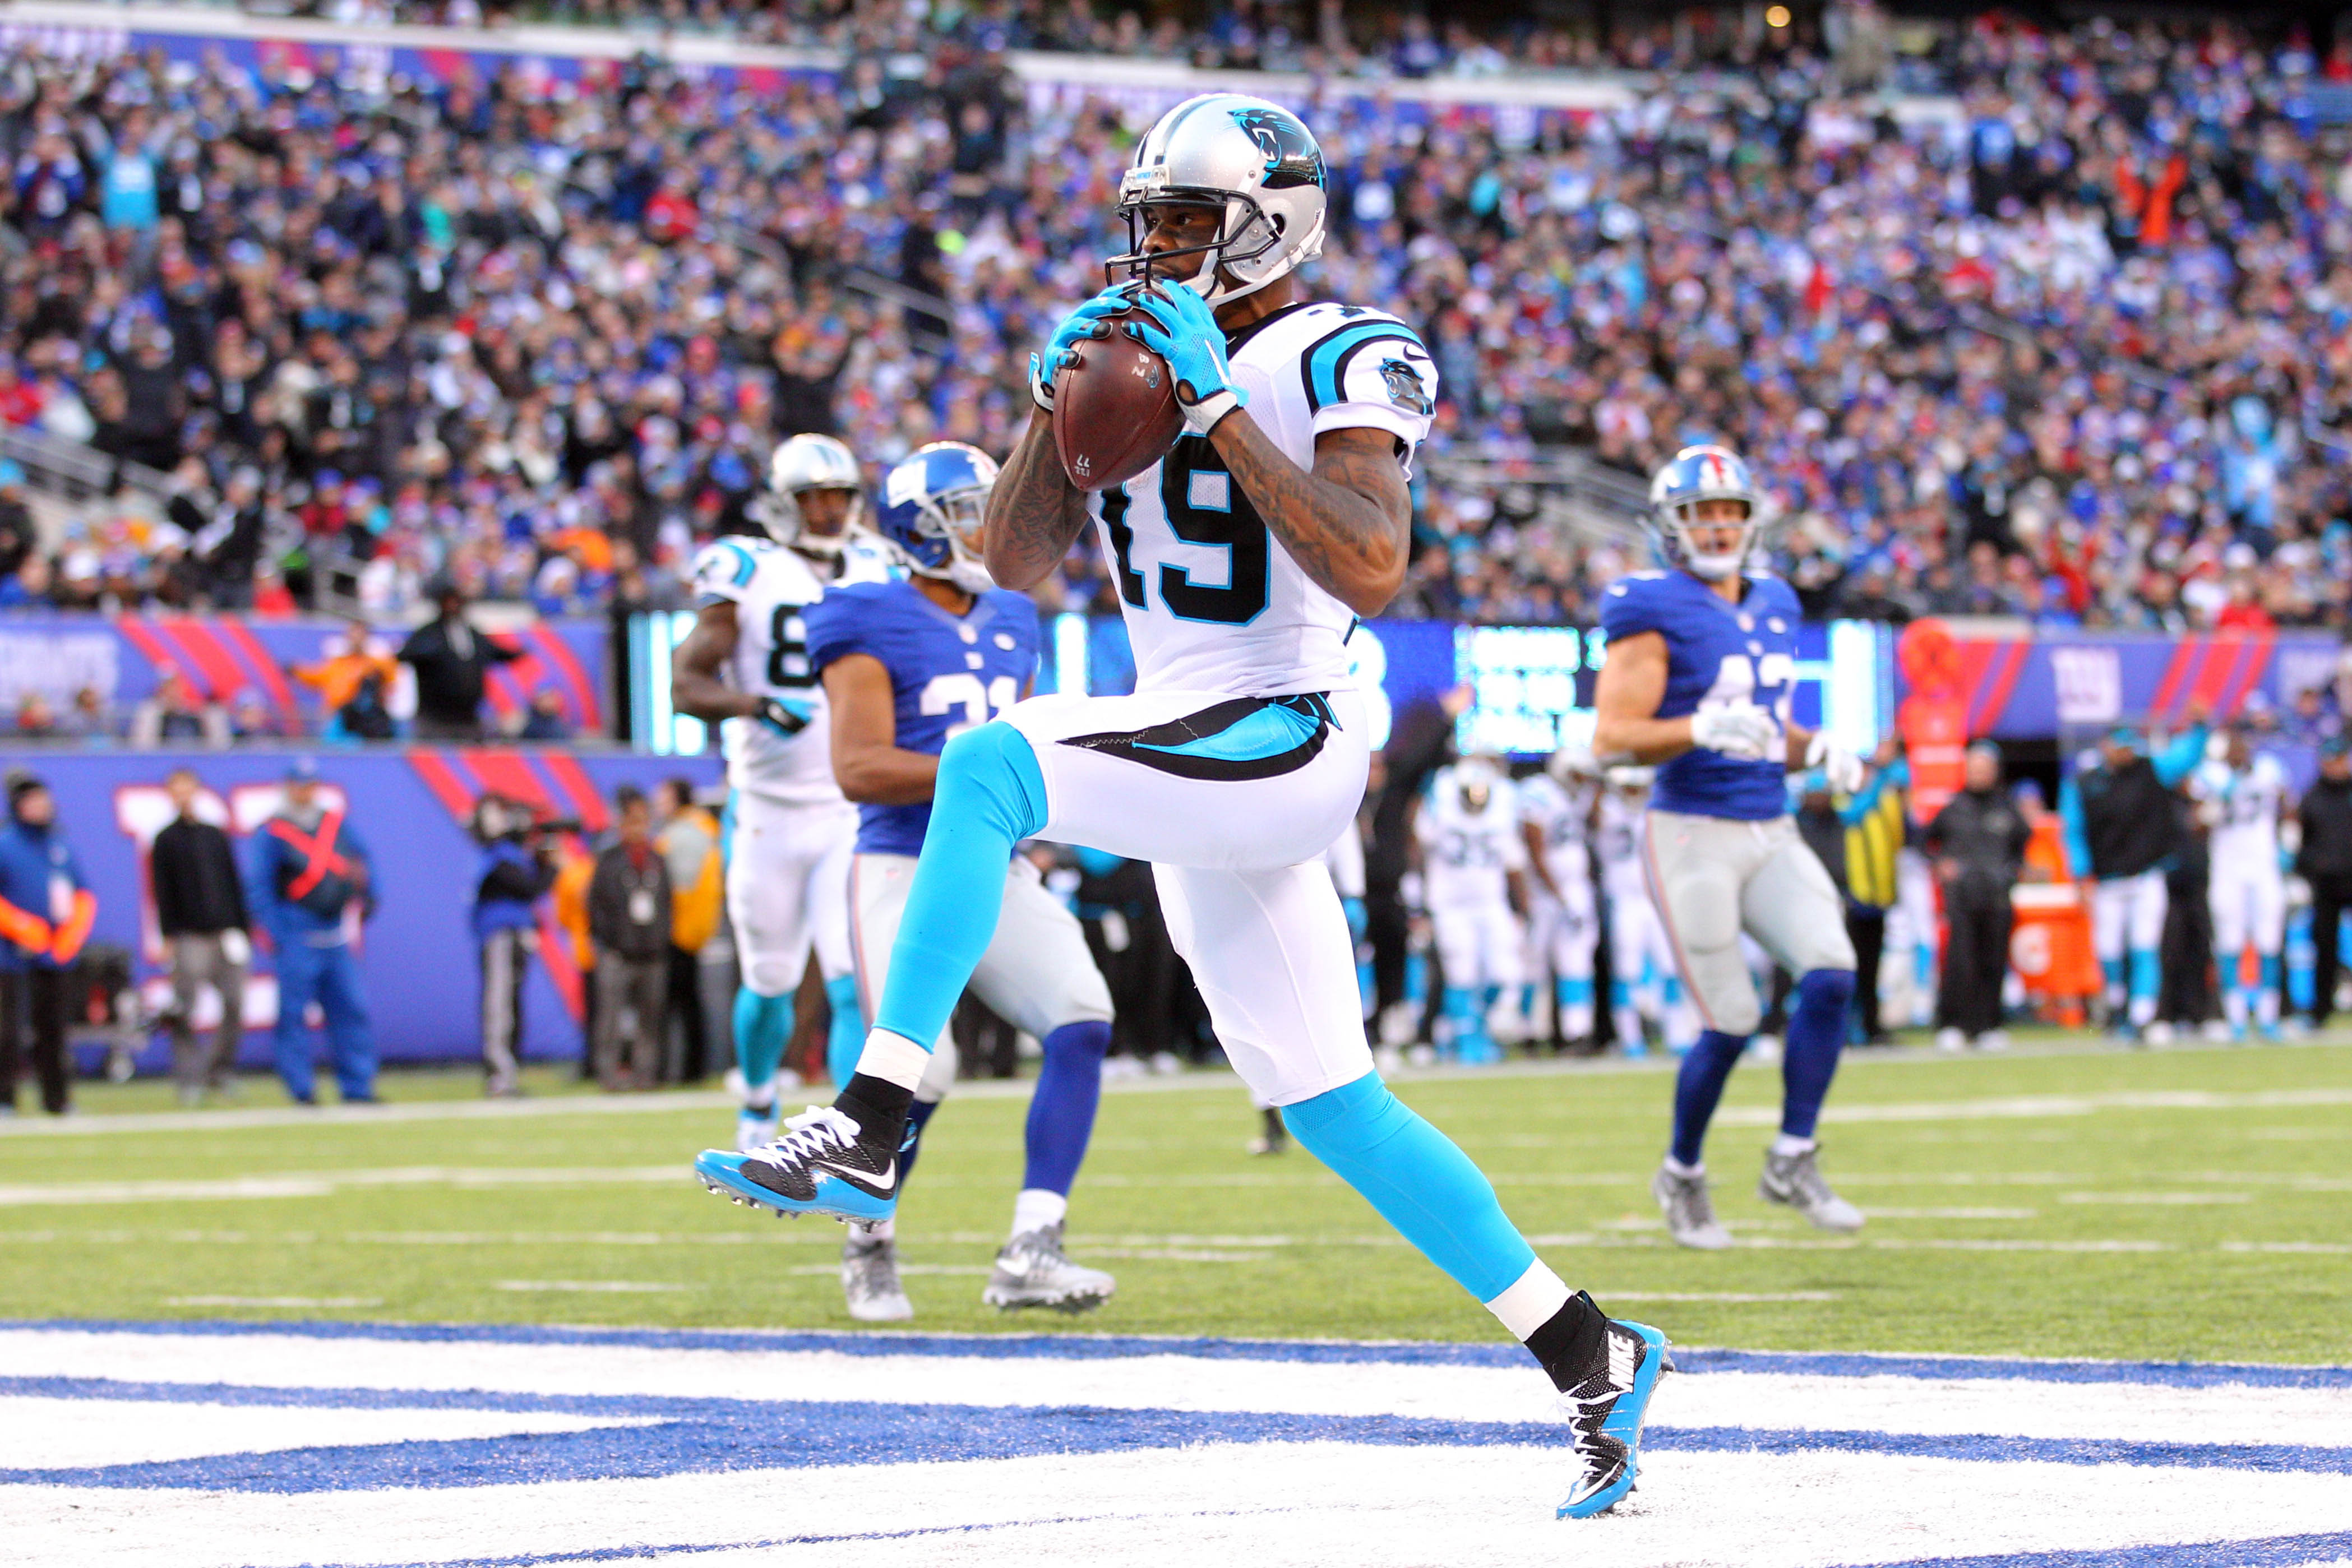 9007964-nfl-carolina-panthers-at-new-york-giants